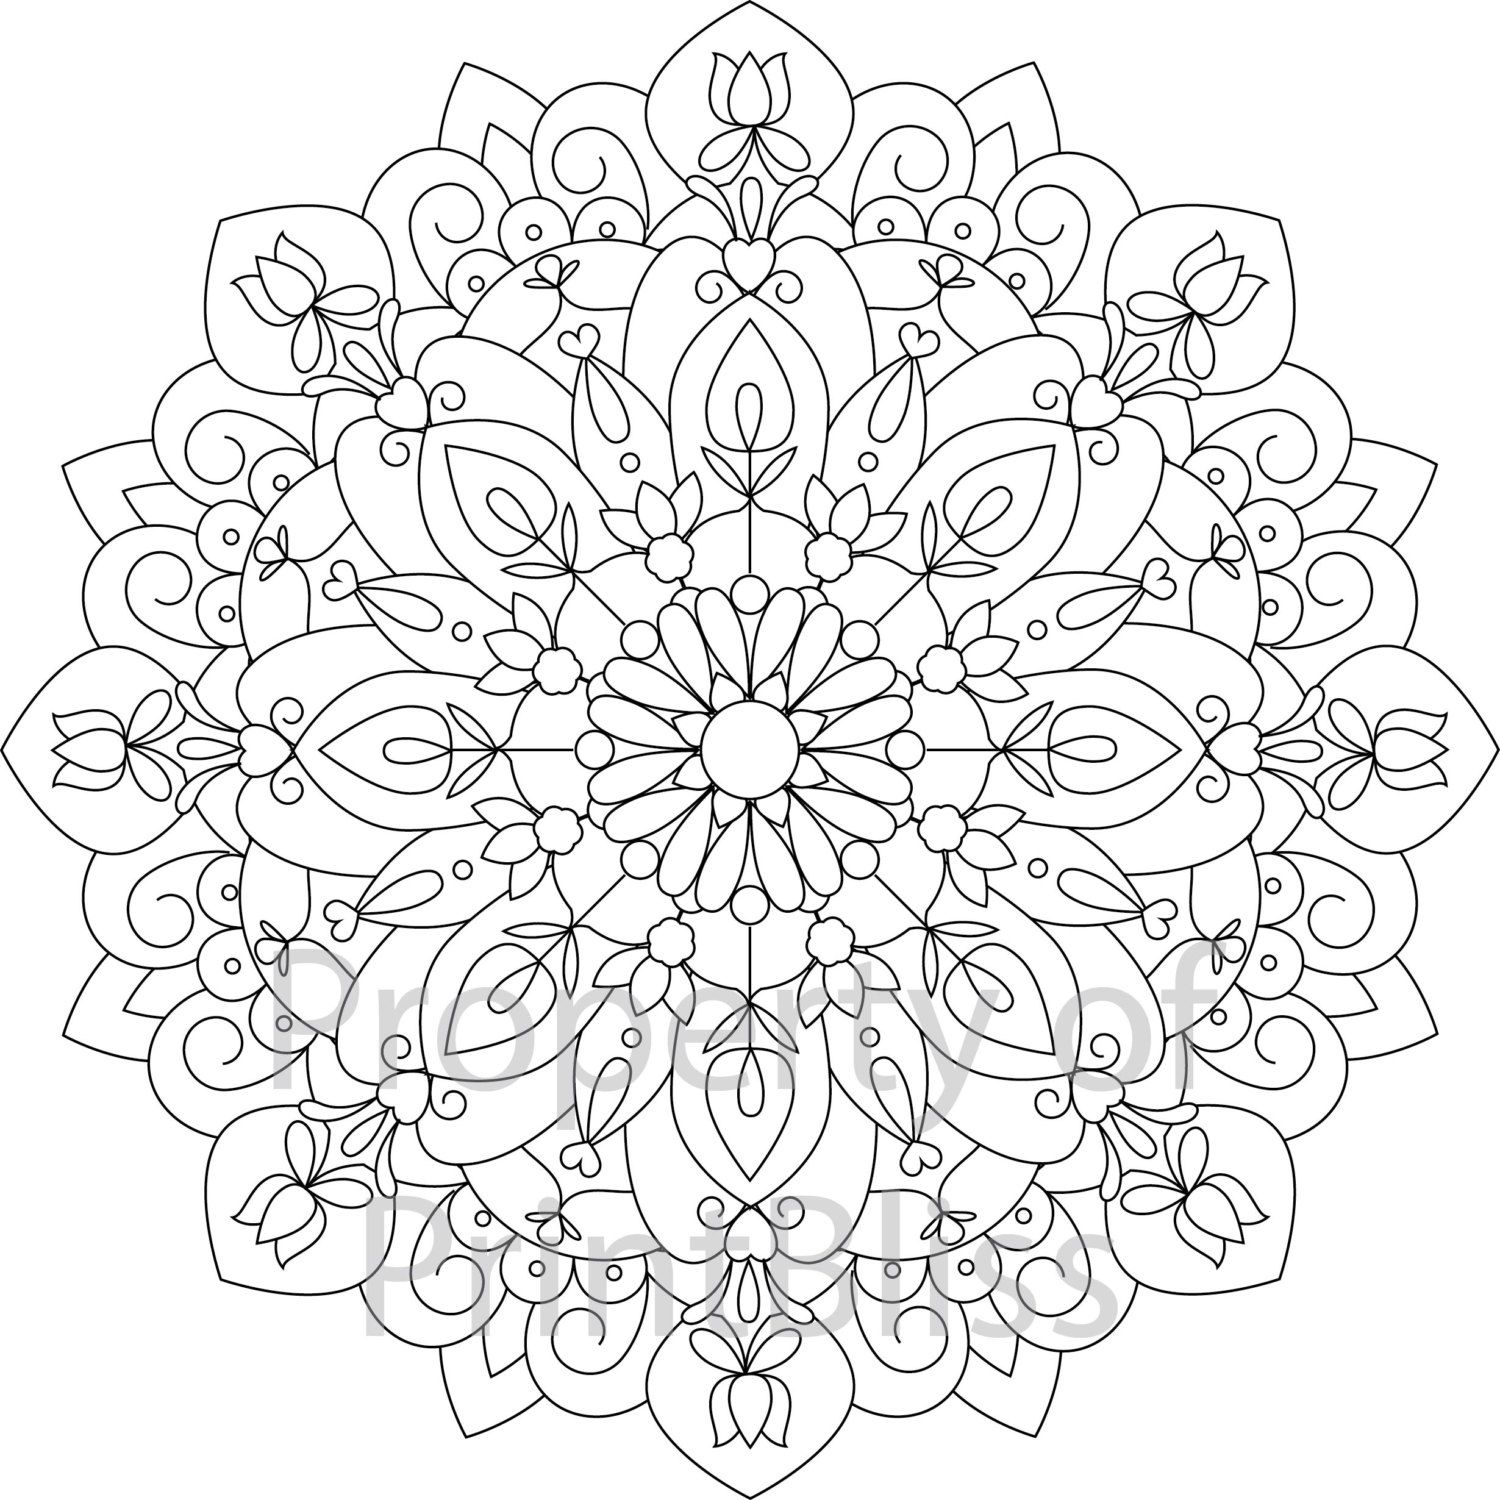 10 flower mandala printable coloring page by printbliss on etsy art my work drawing. Black Bedroom Furniture Sets. Home Design Ideas